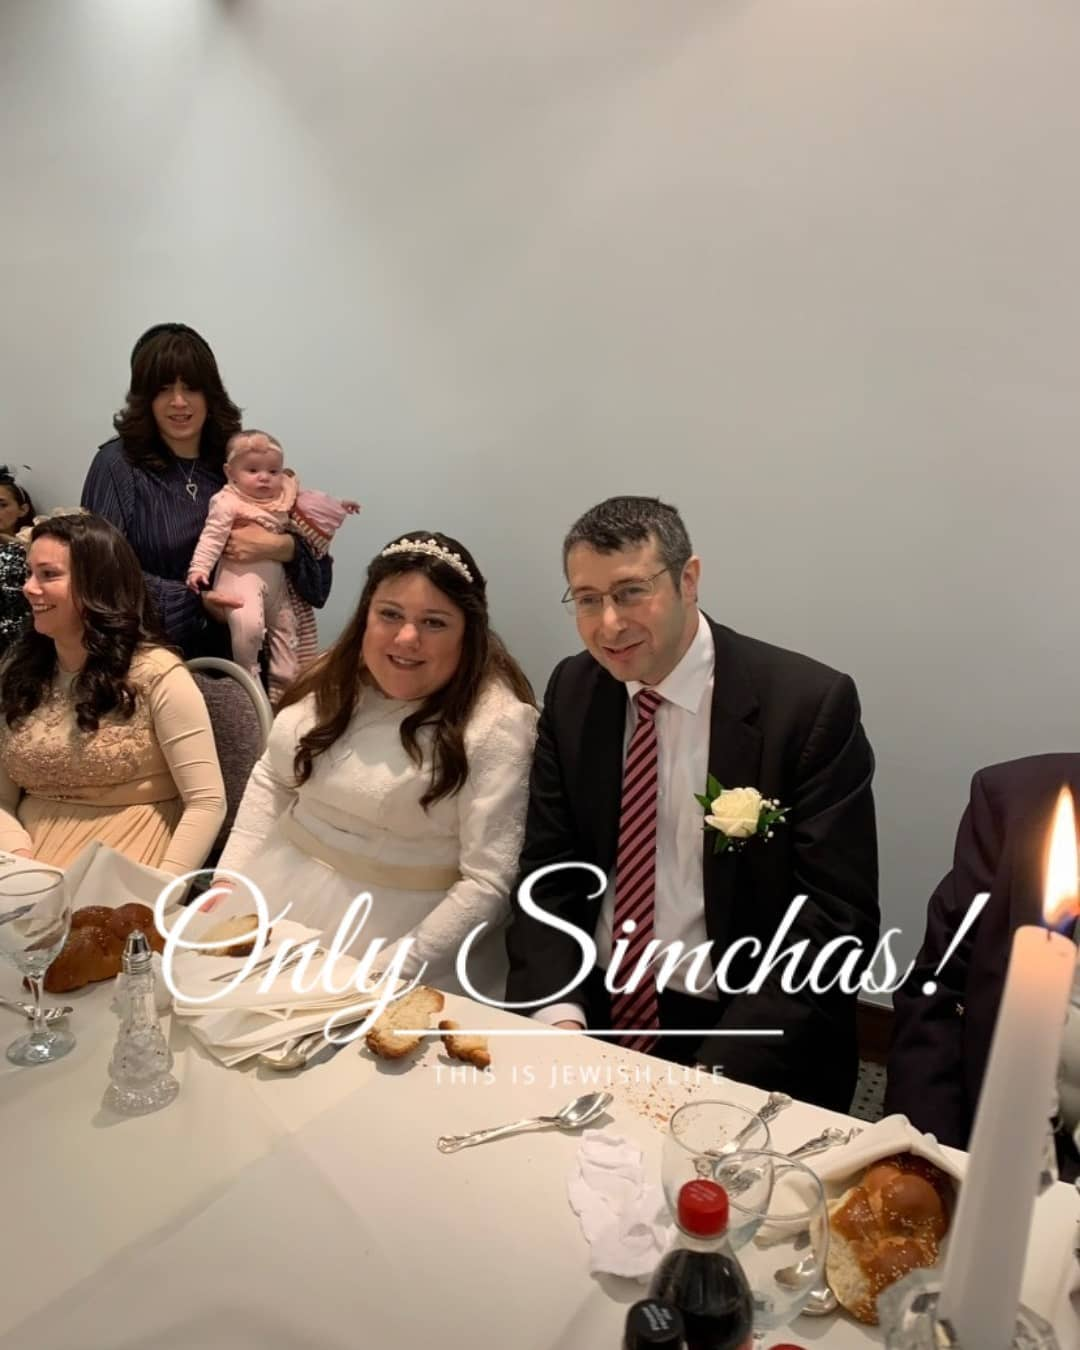 Wedding of Ronnie & Malka Cohen (London)! #onlysimchas